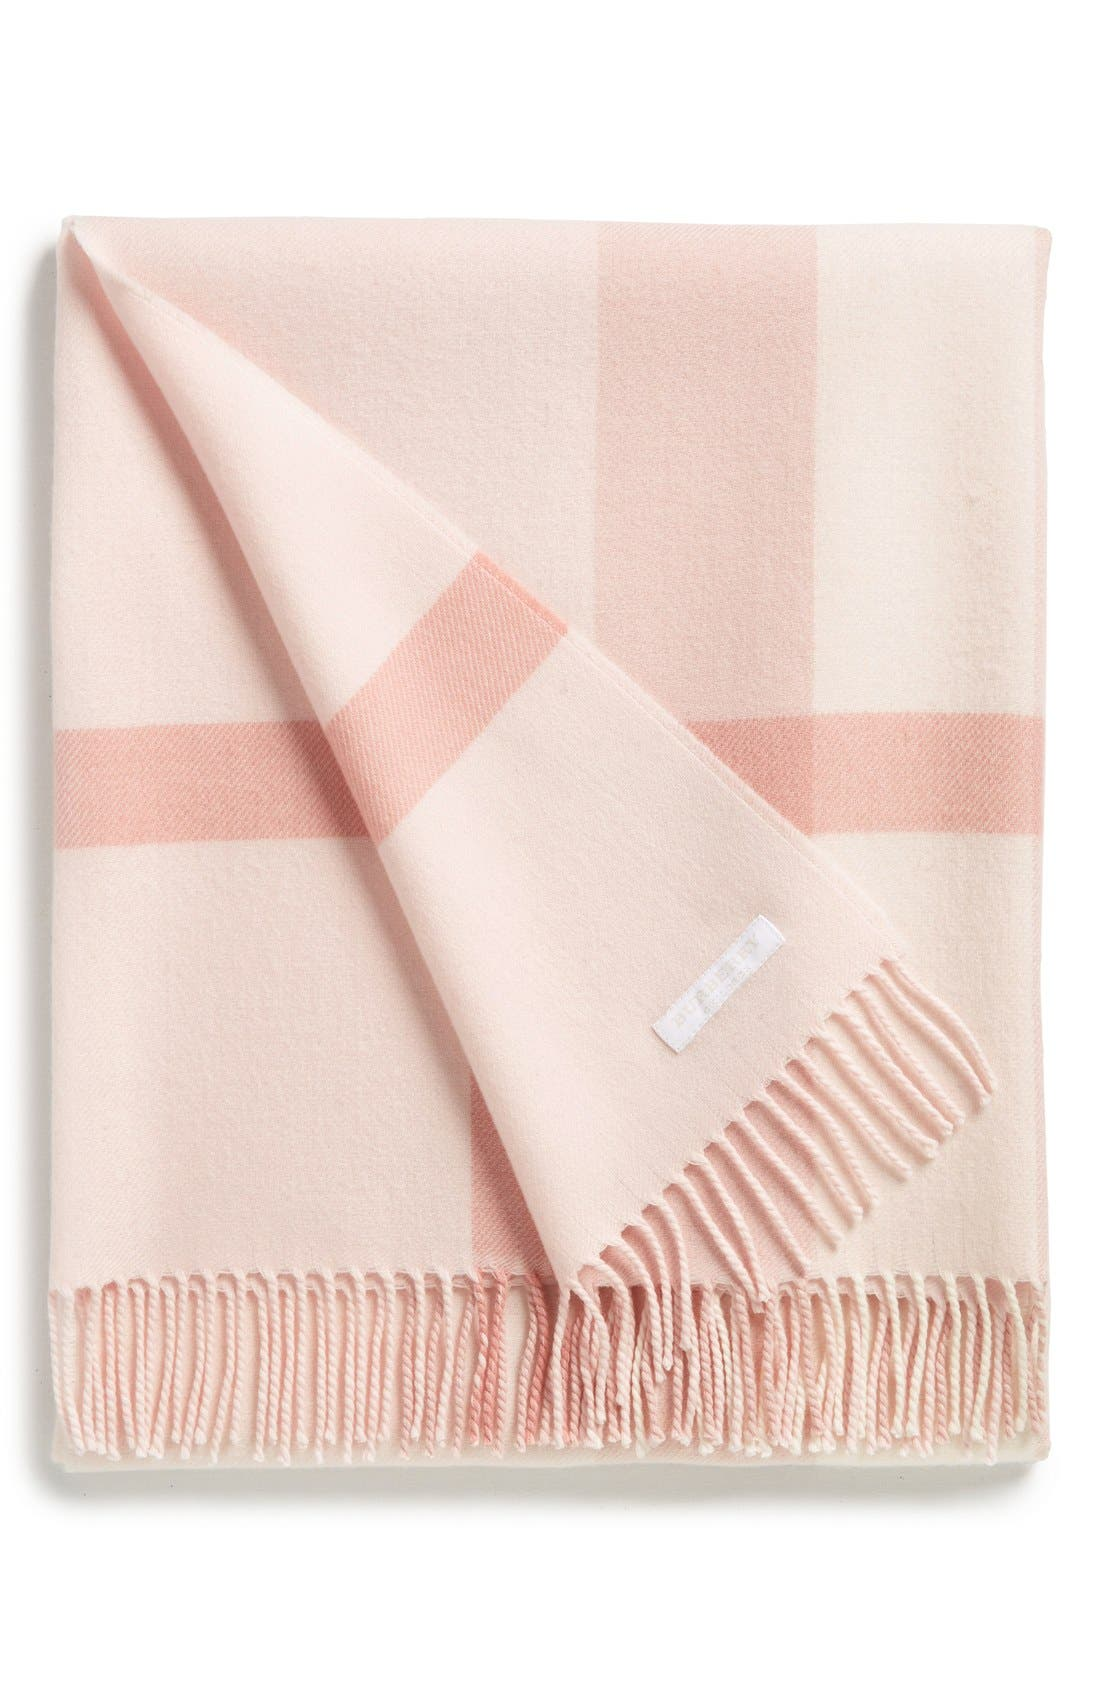 Merino Wool Baby Blanket,                         Main,                         color, Powder Pink